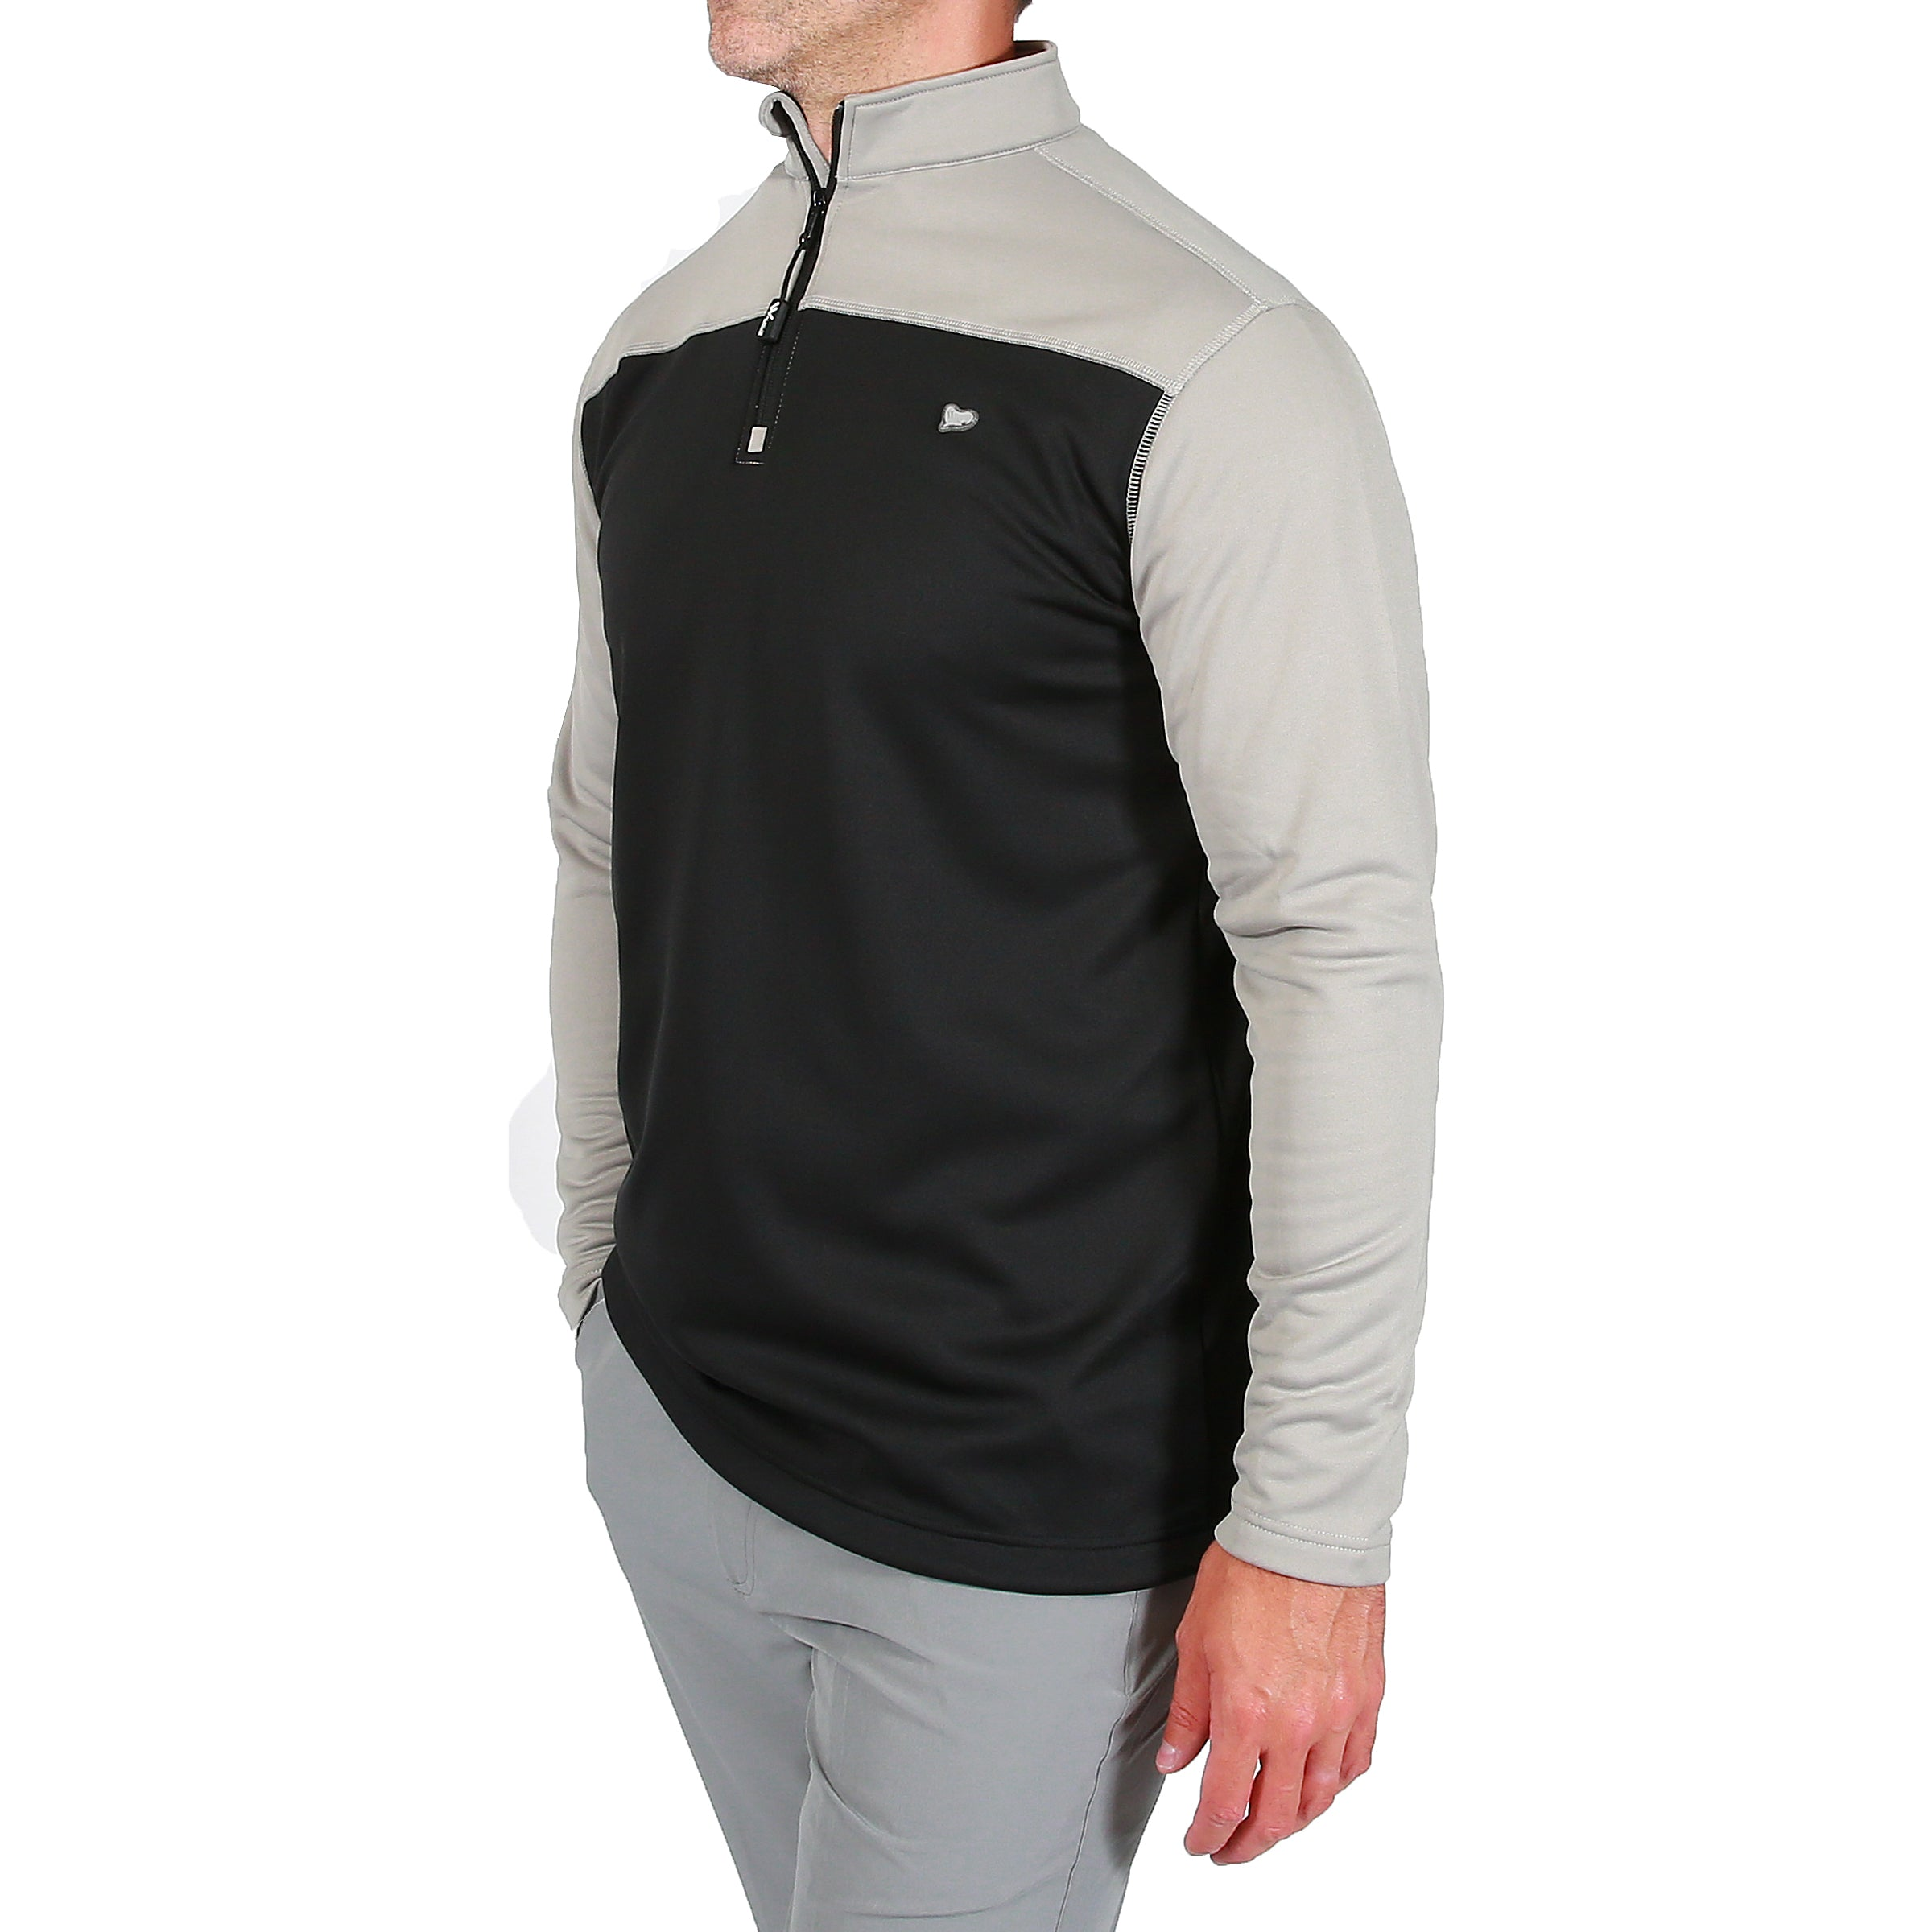 Robert 1/4 Zip Cover Up - Neutral Grey/Black by  Walrus Apparel